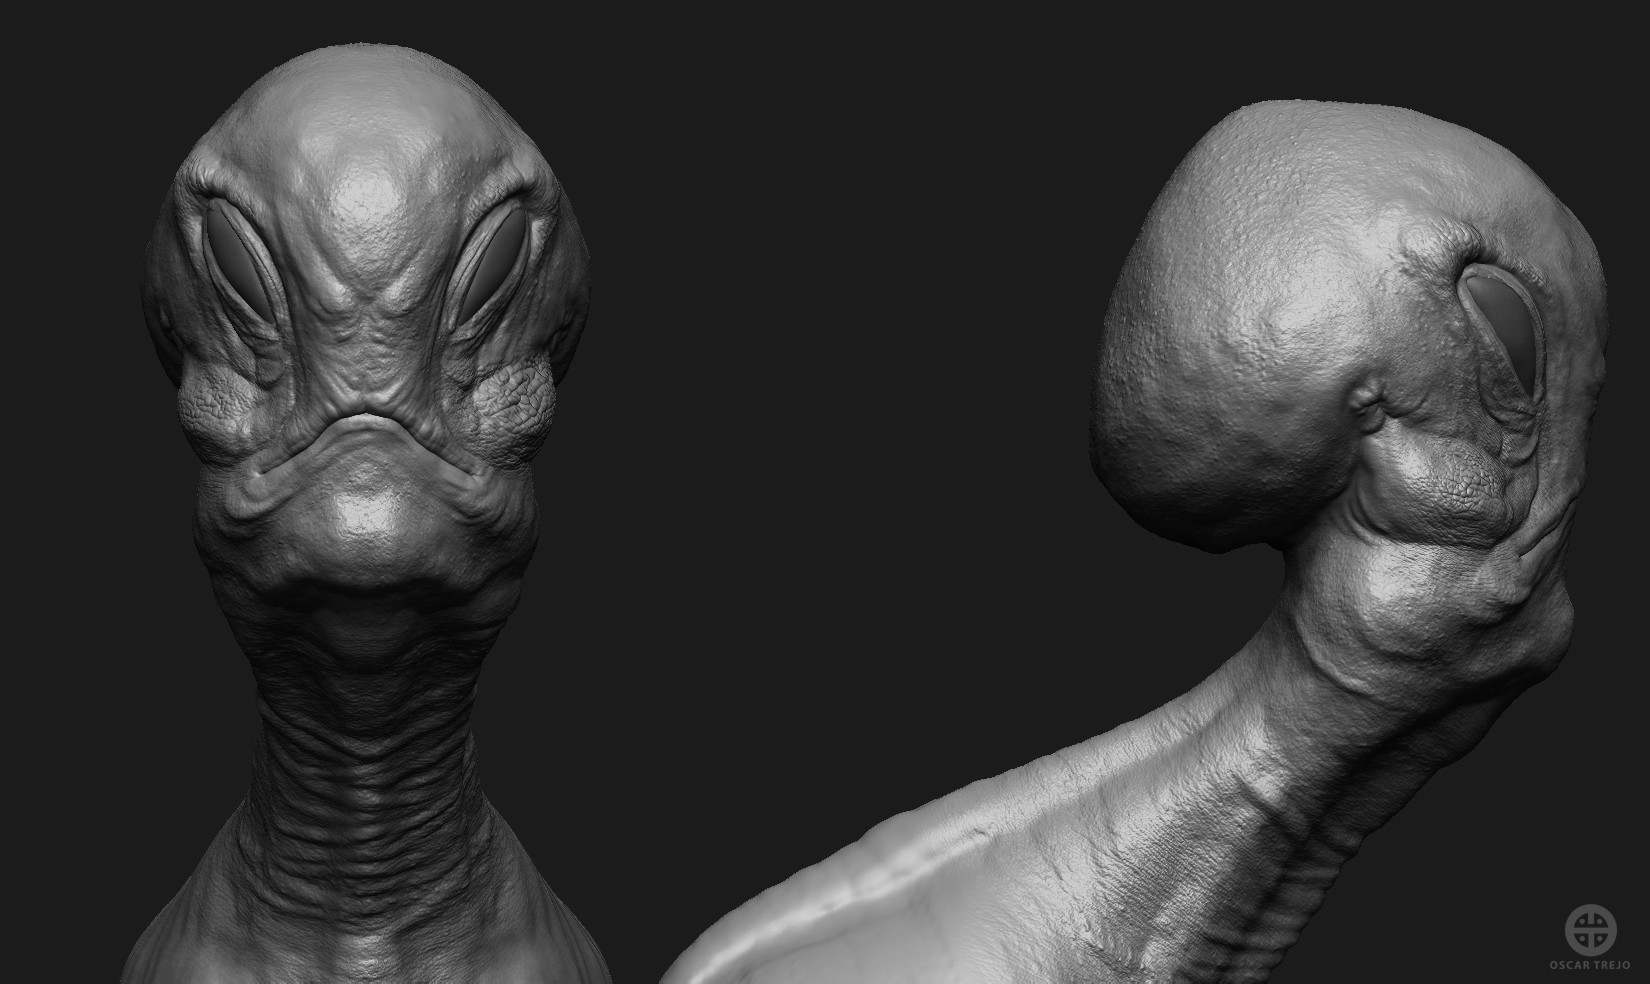 Oscar trejo alien fashion wip 6